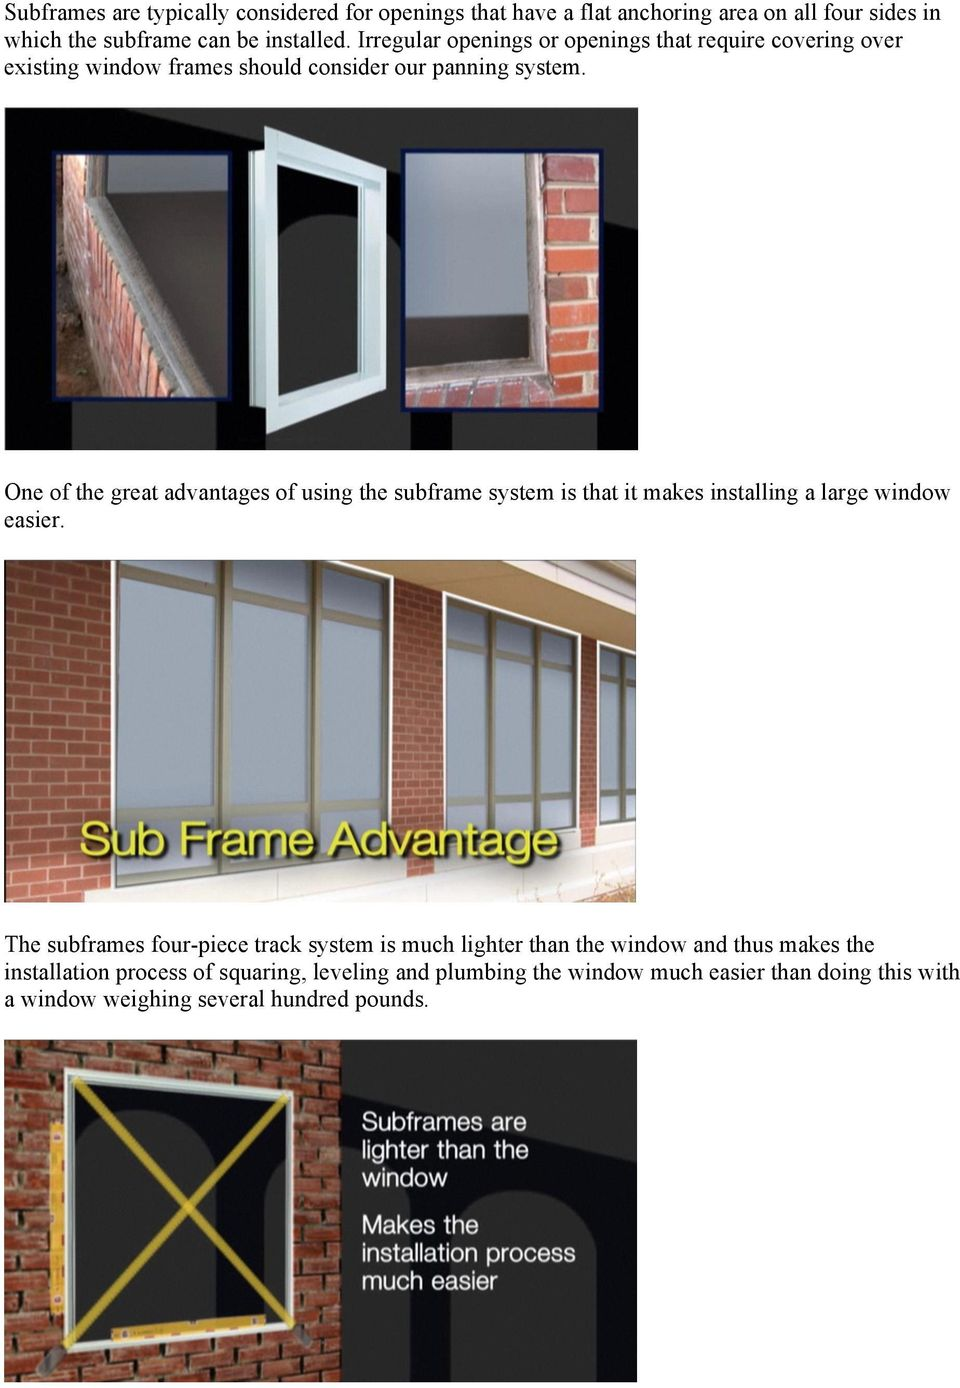 One of the great advantages of using the subframe system is that it makes installing a large window easier.